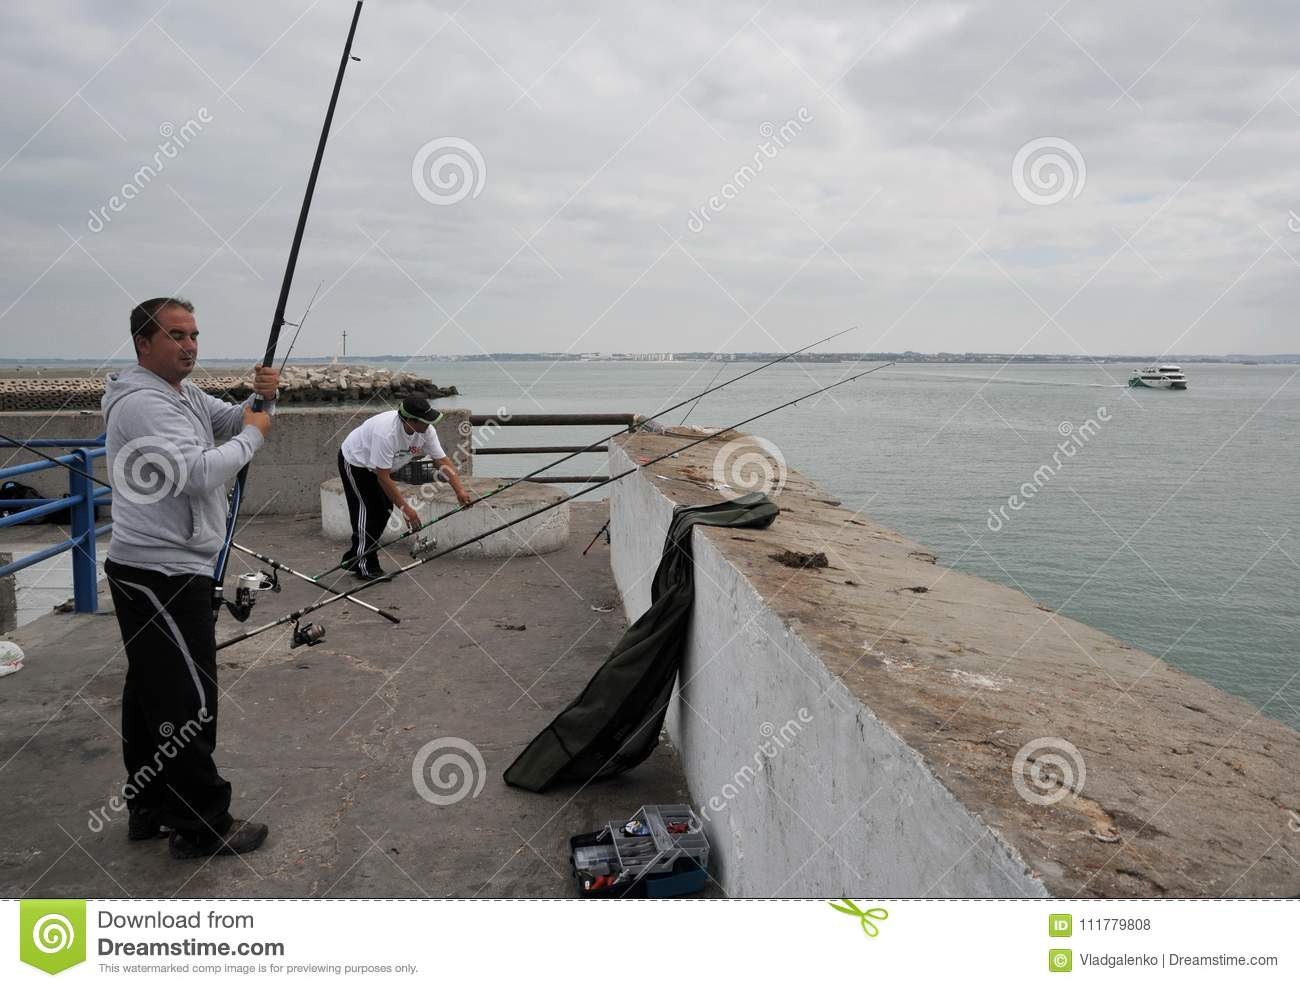 Fishermen are fishing in the harbor of the seaport of Cadiz.